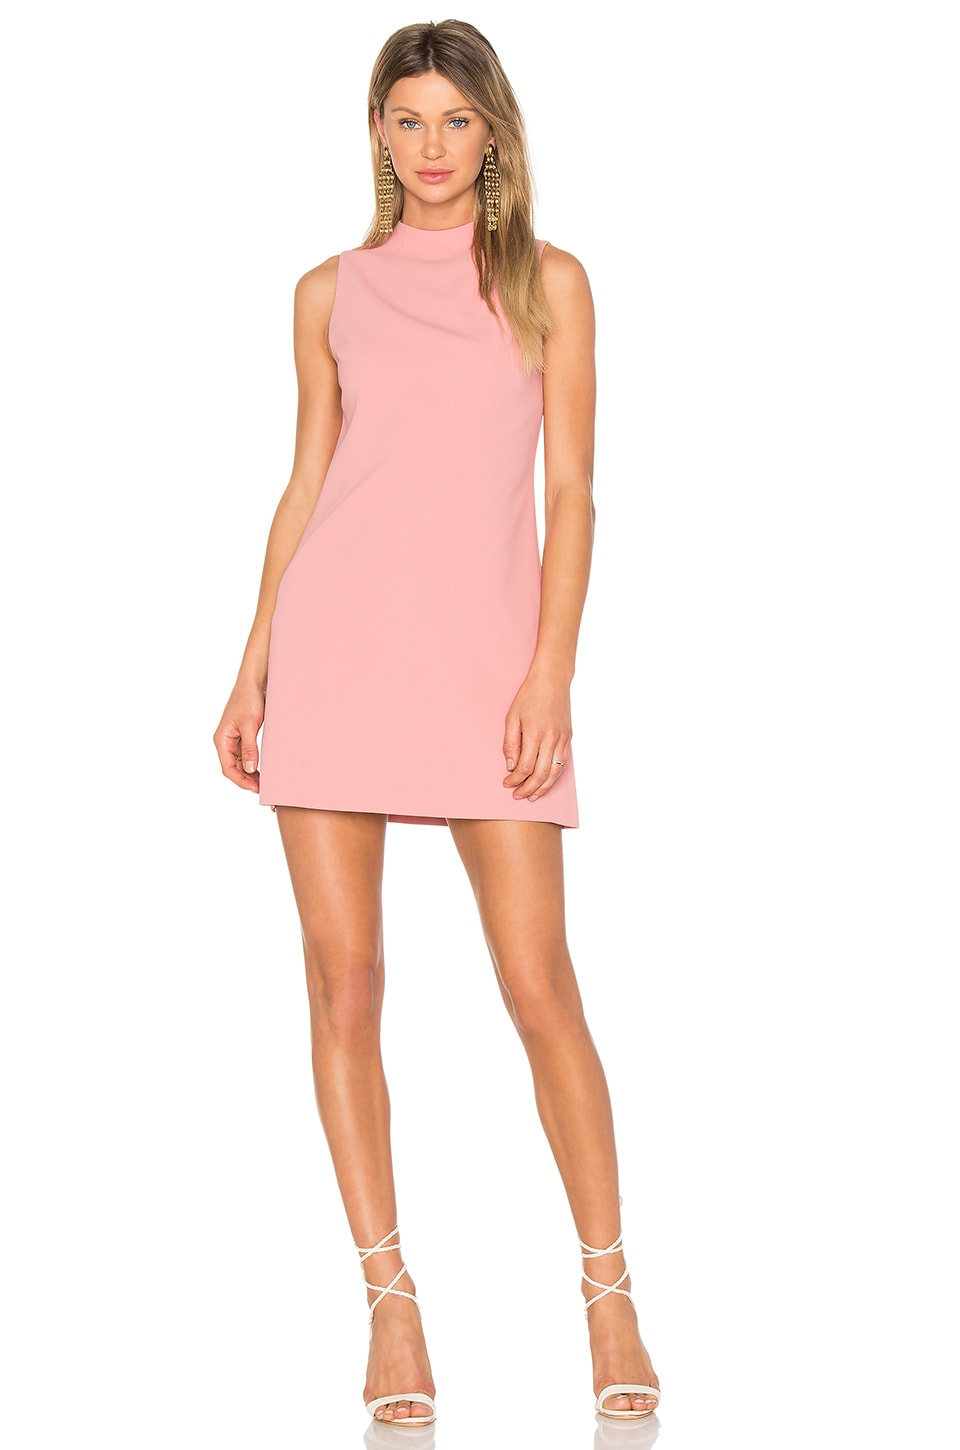 buy Coley Dress by Alice + Olivia dresses online shopping